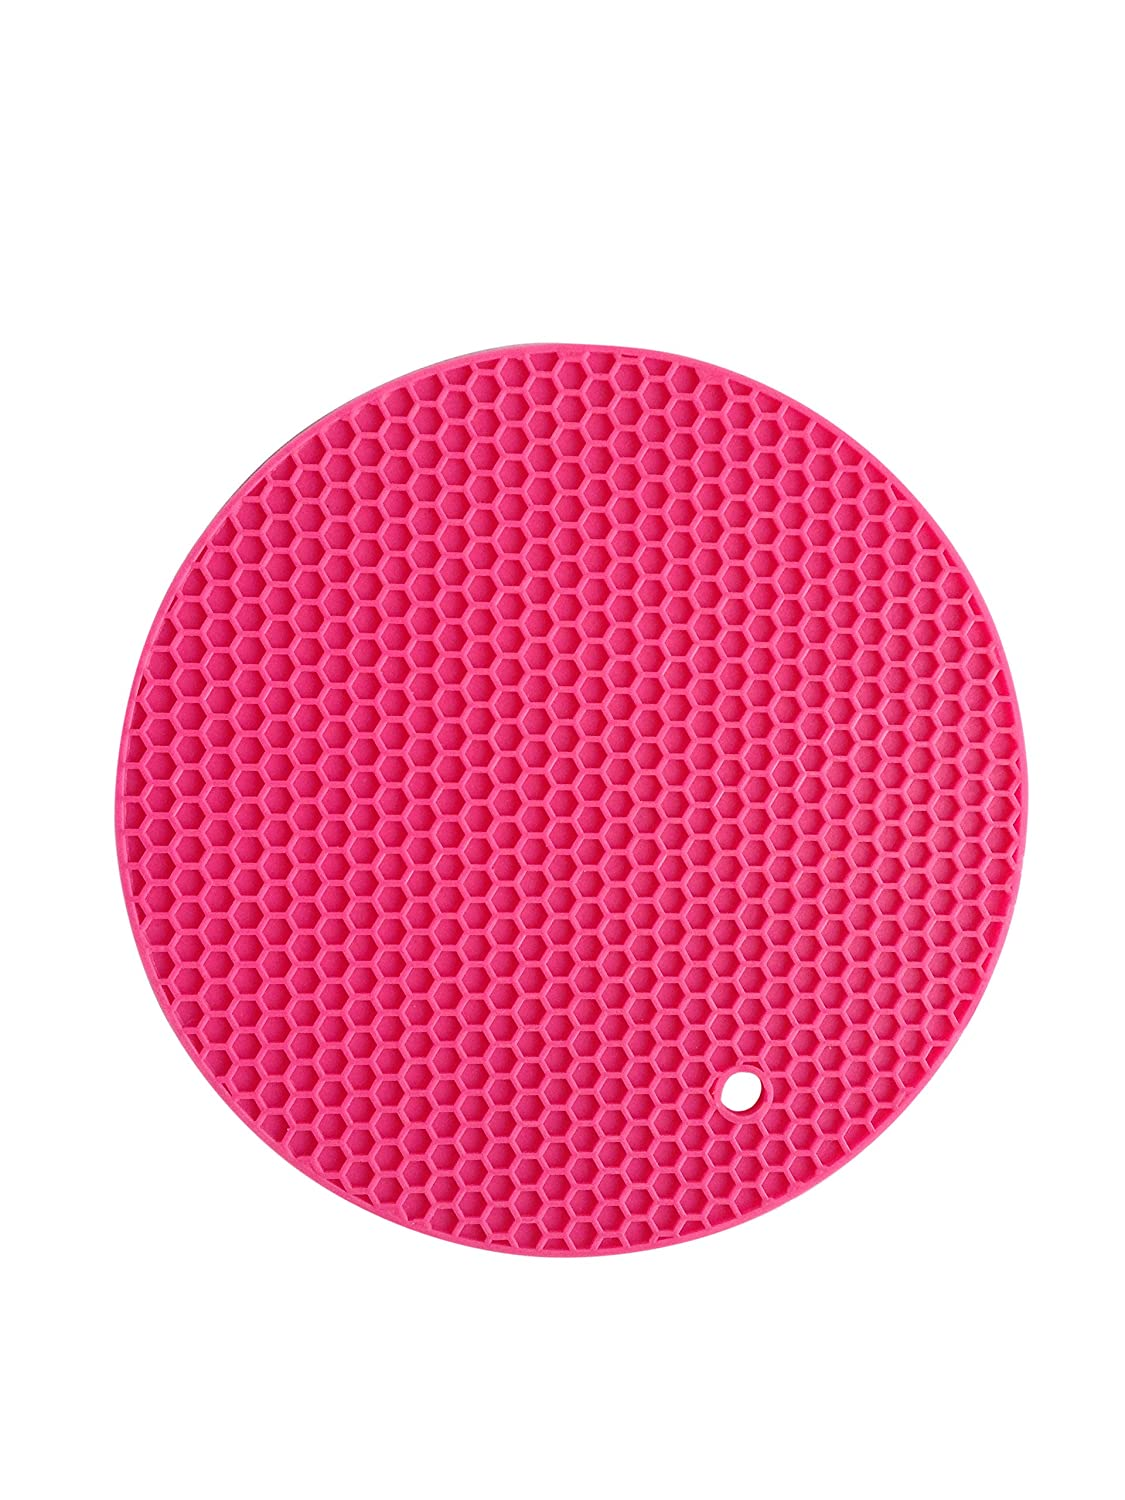 Placemat// with Free Ebook Gift 50 Famous Cupcake Recipes MosBug COMINHKPR95457 Pot Holder 2016 Rhumen Premium Value Set of 6 Silicone Trivets Coaster